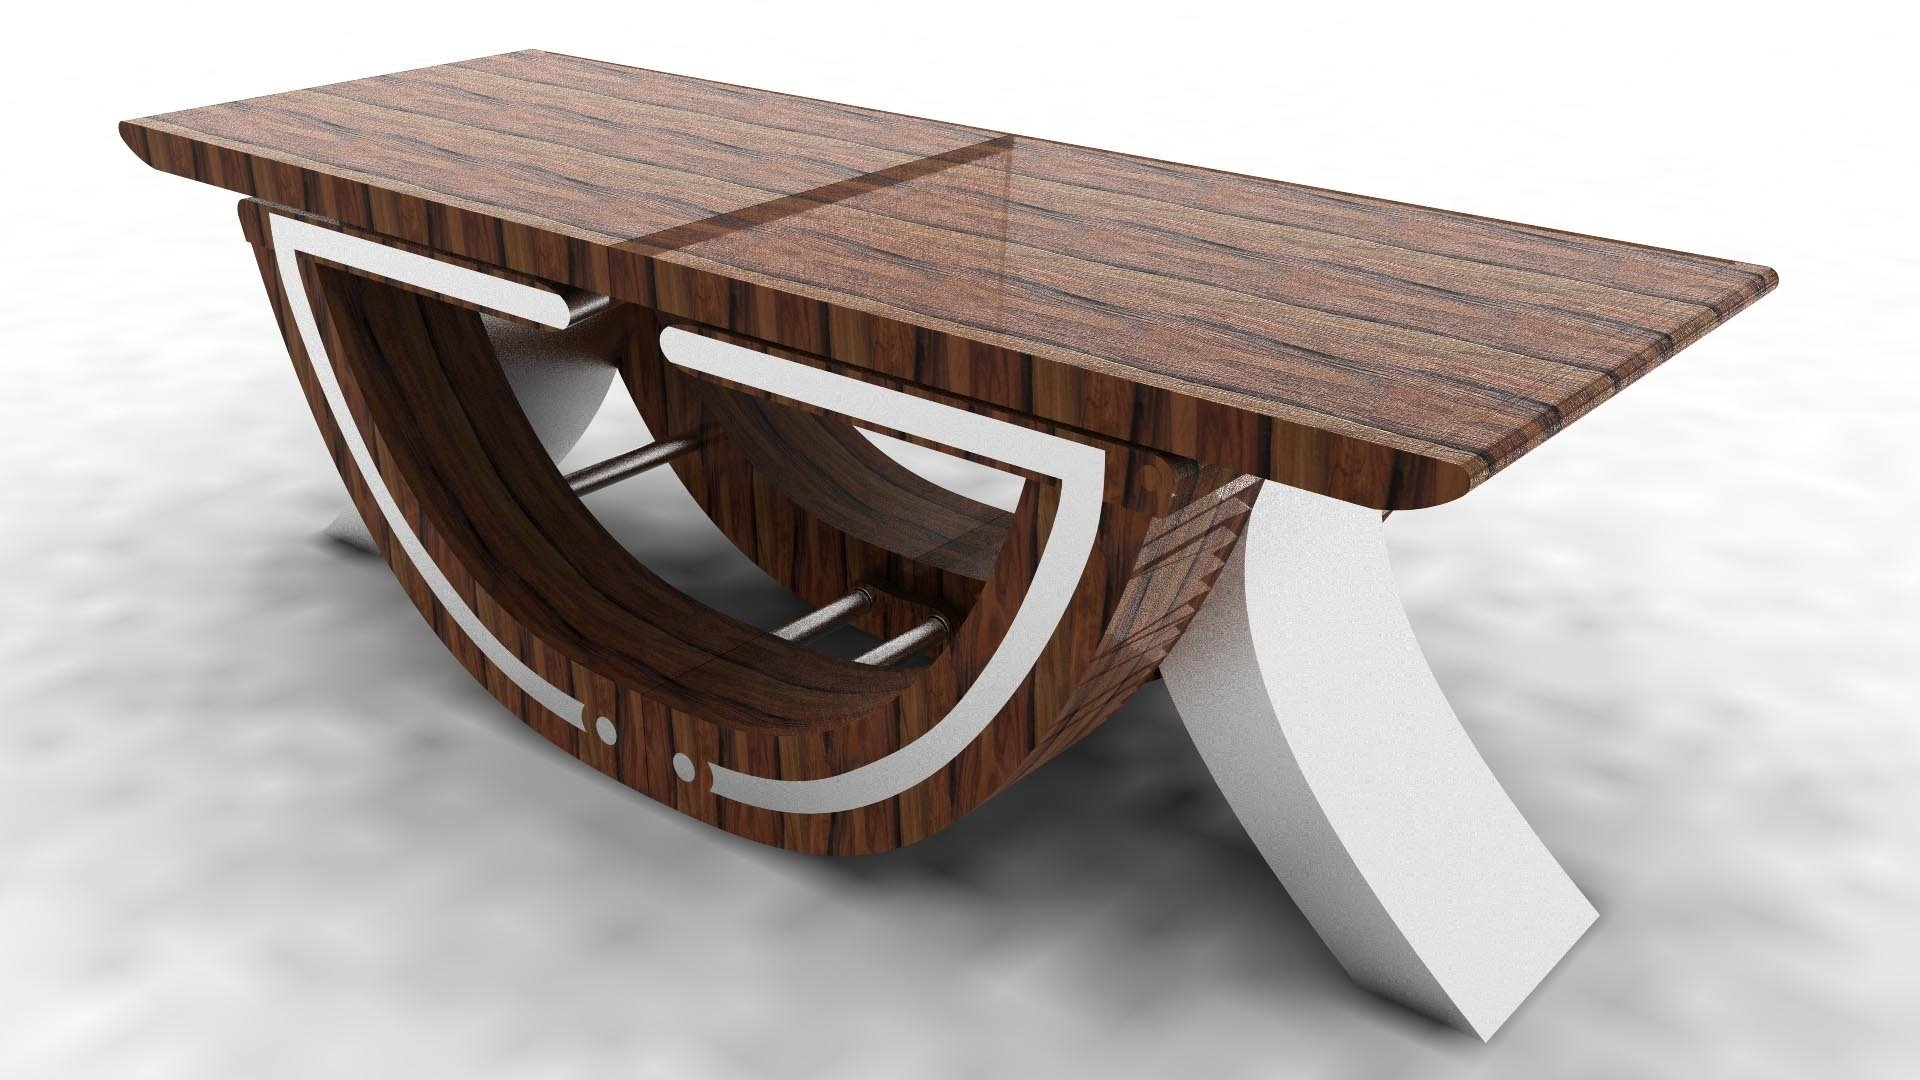 50 Amazing Convertible Coffee Table To Dining Visualhunt